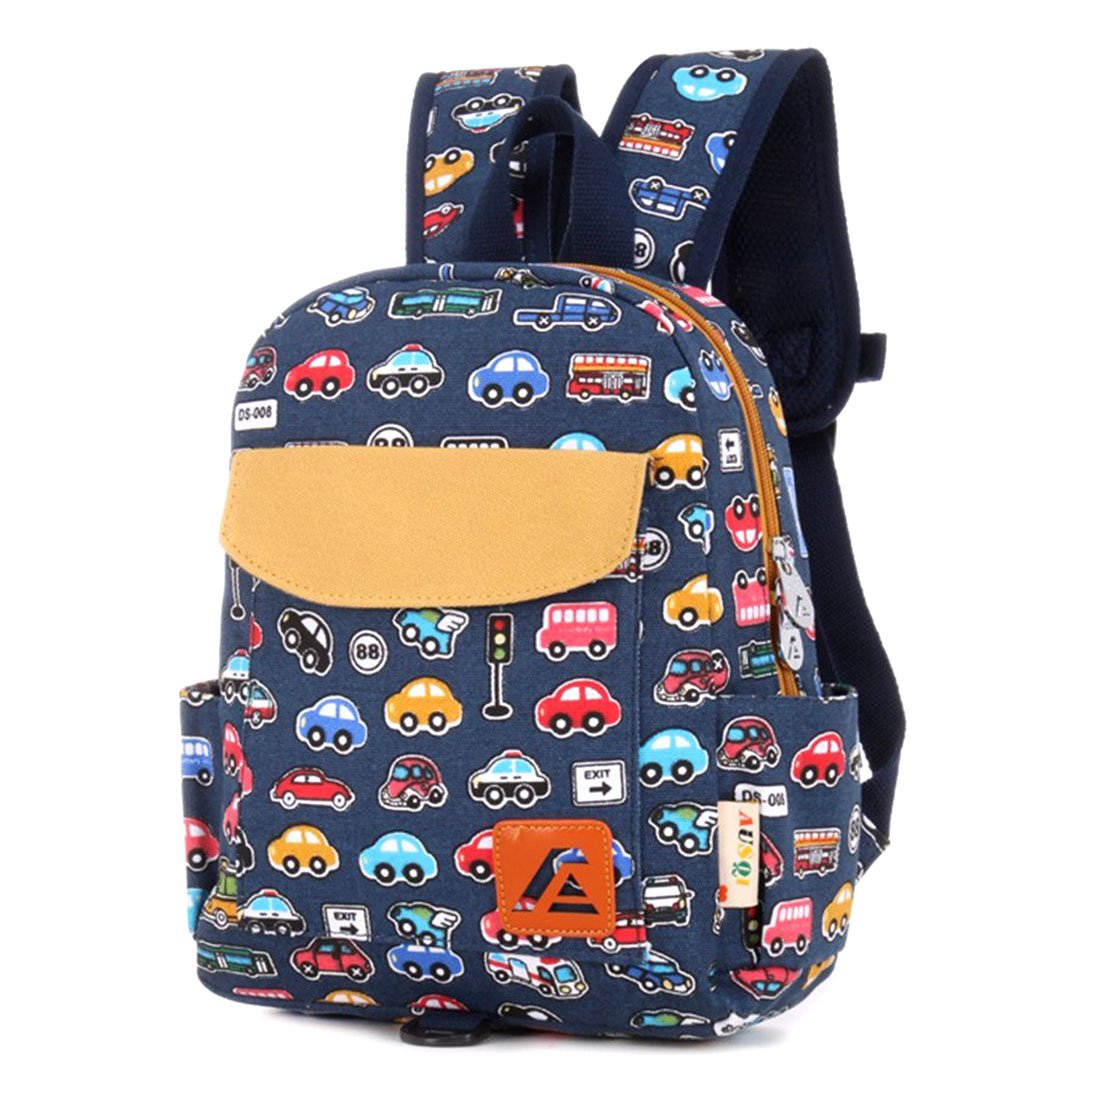 childrens designer handbags 5c8z  iTECHOR Printing Canvas Backpack Rucksack Kindergarten School Student Bag  for Boys Girls Kids Children Toddlers